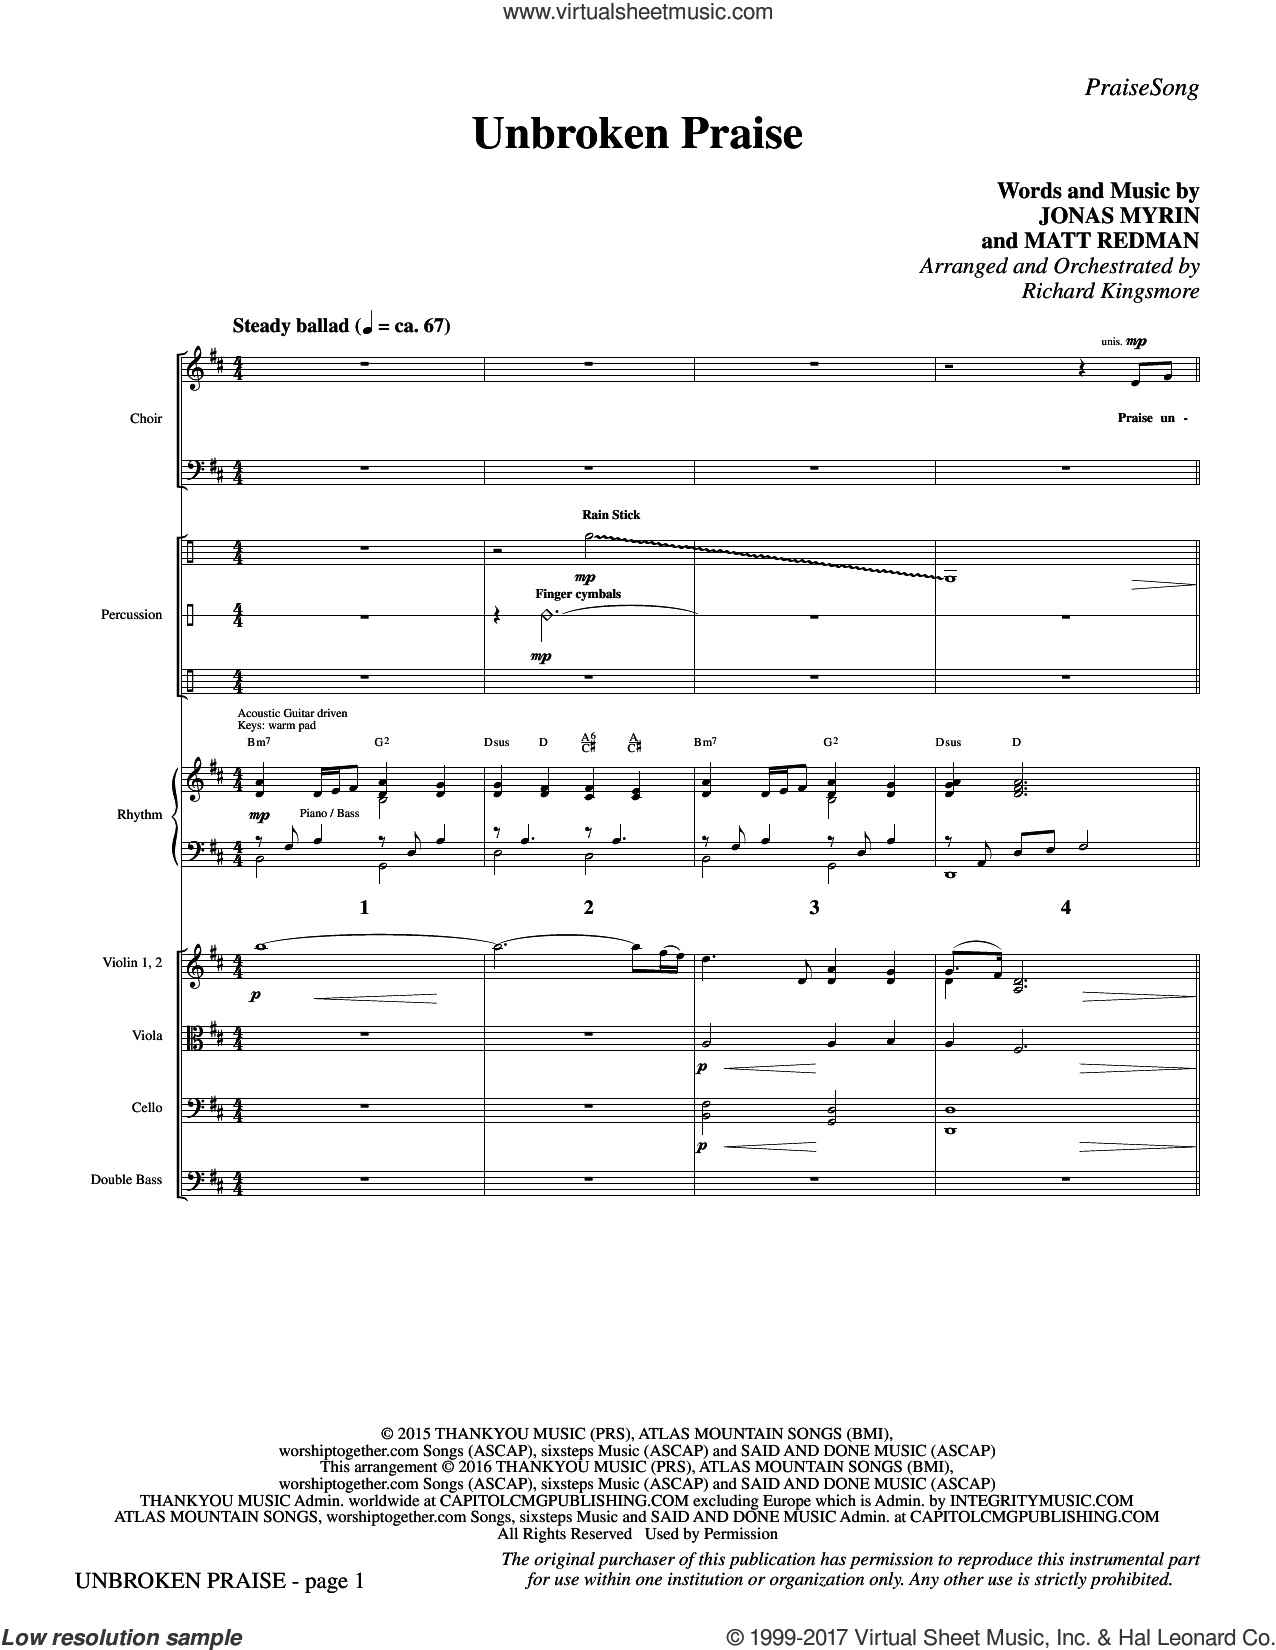 Unbroken Praise (COMPLETE) sheet music for orchestra by Matt Redman, Richard Kingsmore and Jonas Myrin, intermediate orchestra. Score Image Preview.